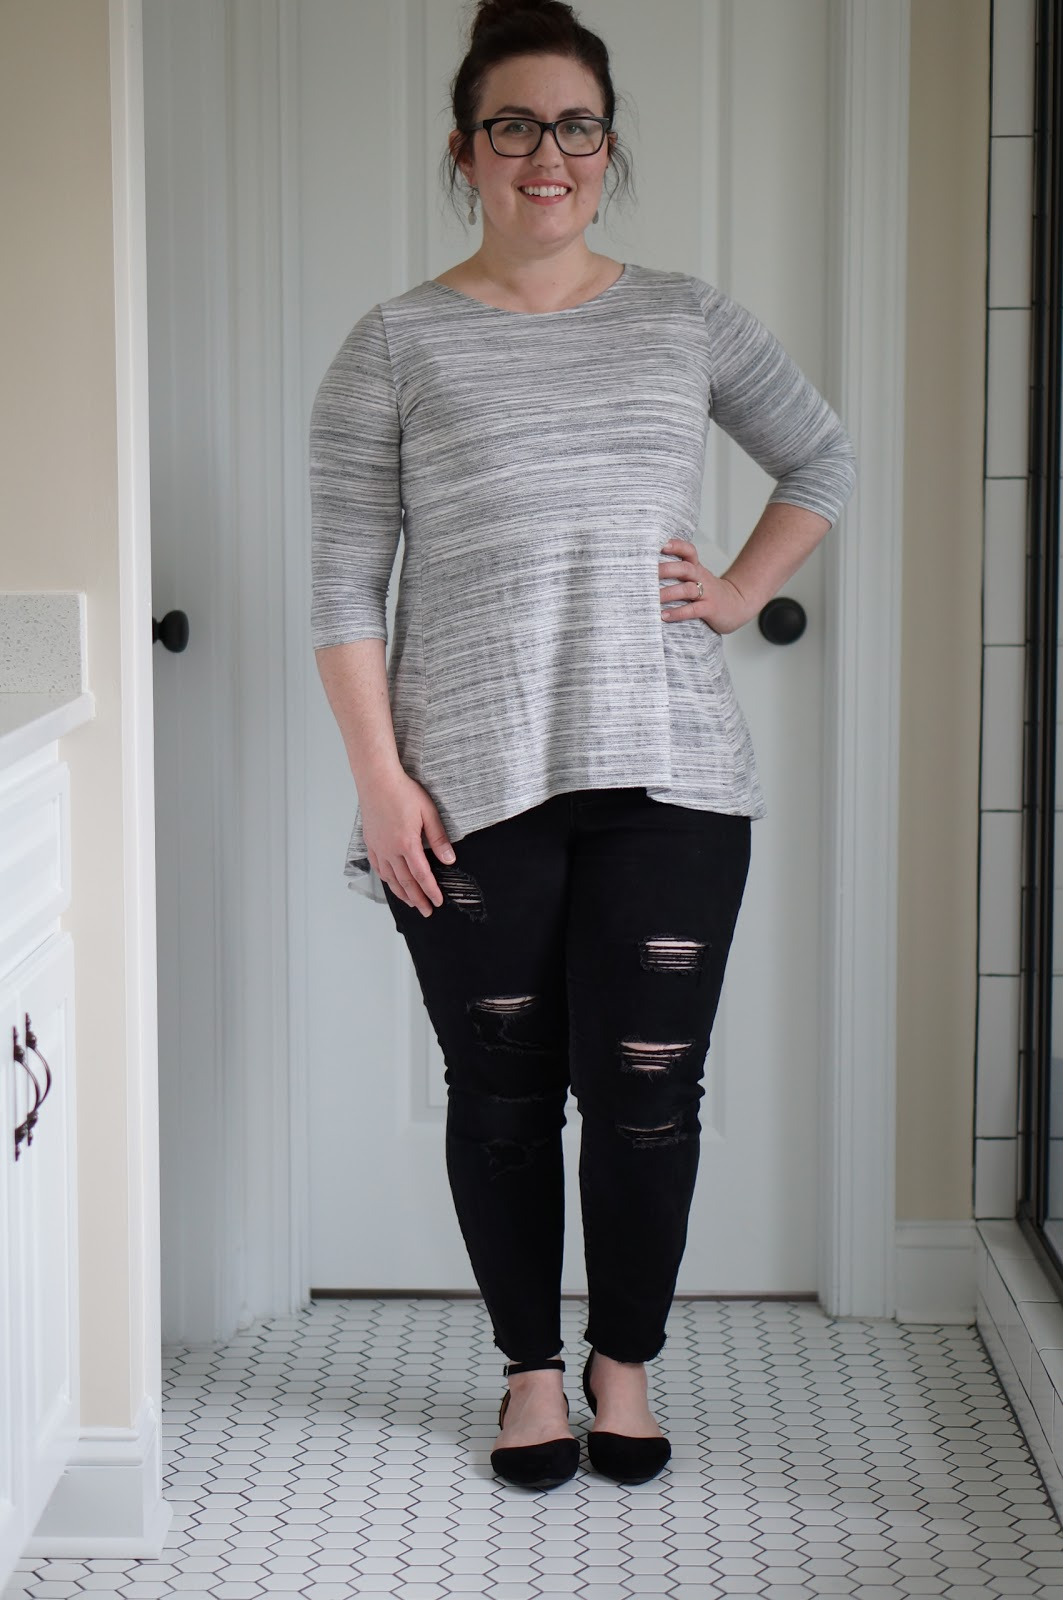 BLACK & GRAY | FALL FASHION by North Carolina fashion blogger Rebecca Lately